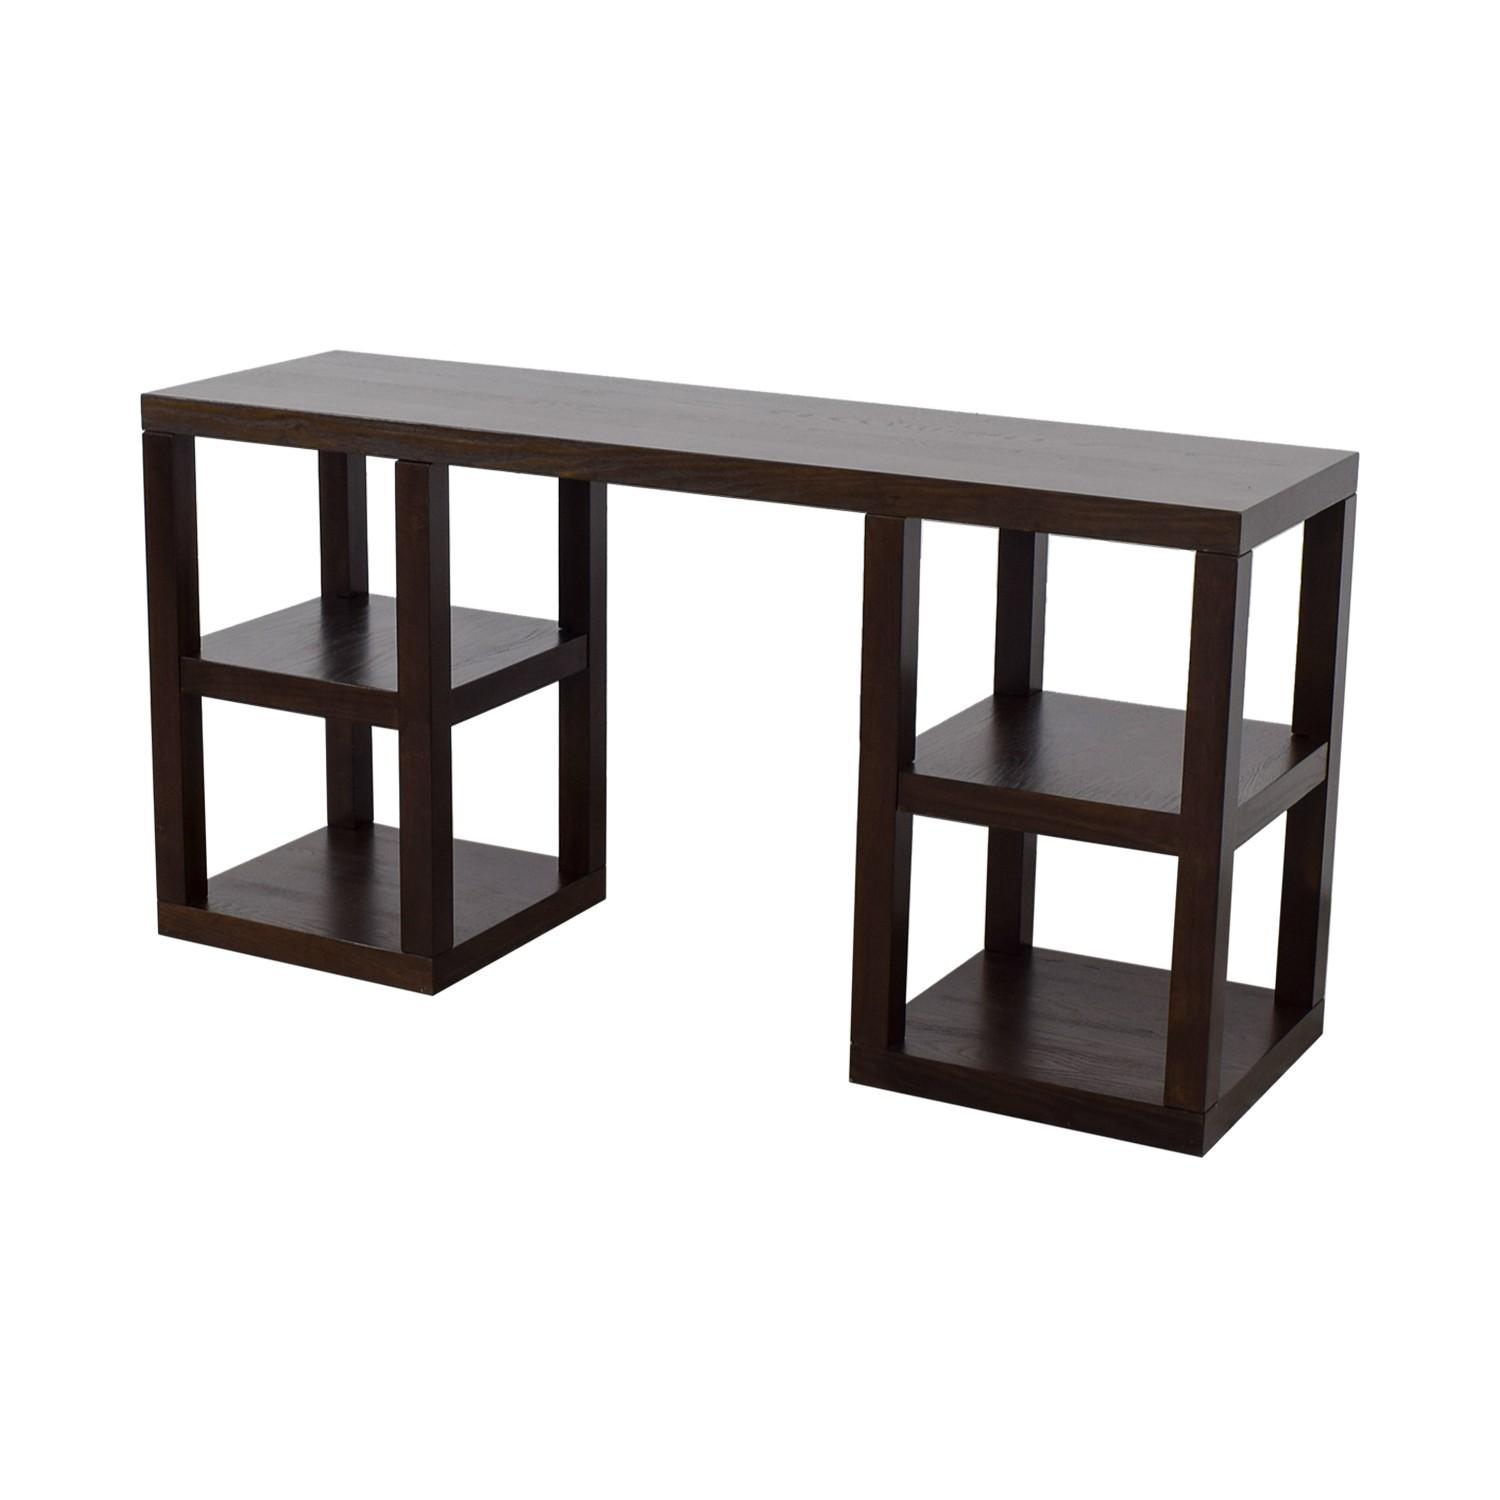 West Elm 2 X 2 Console Desk in Chocolate - image-4